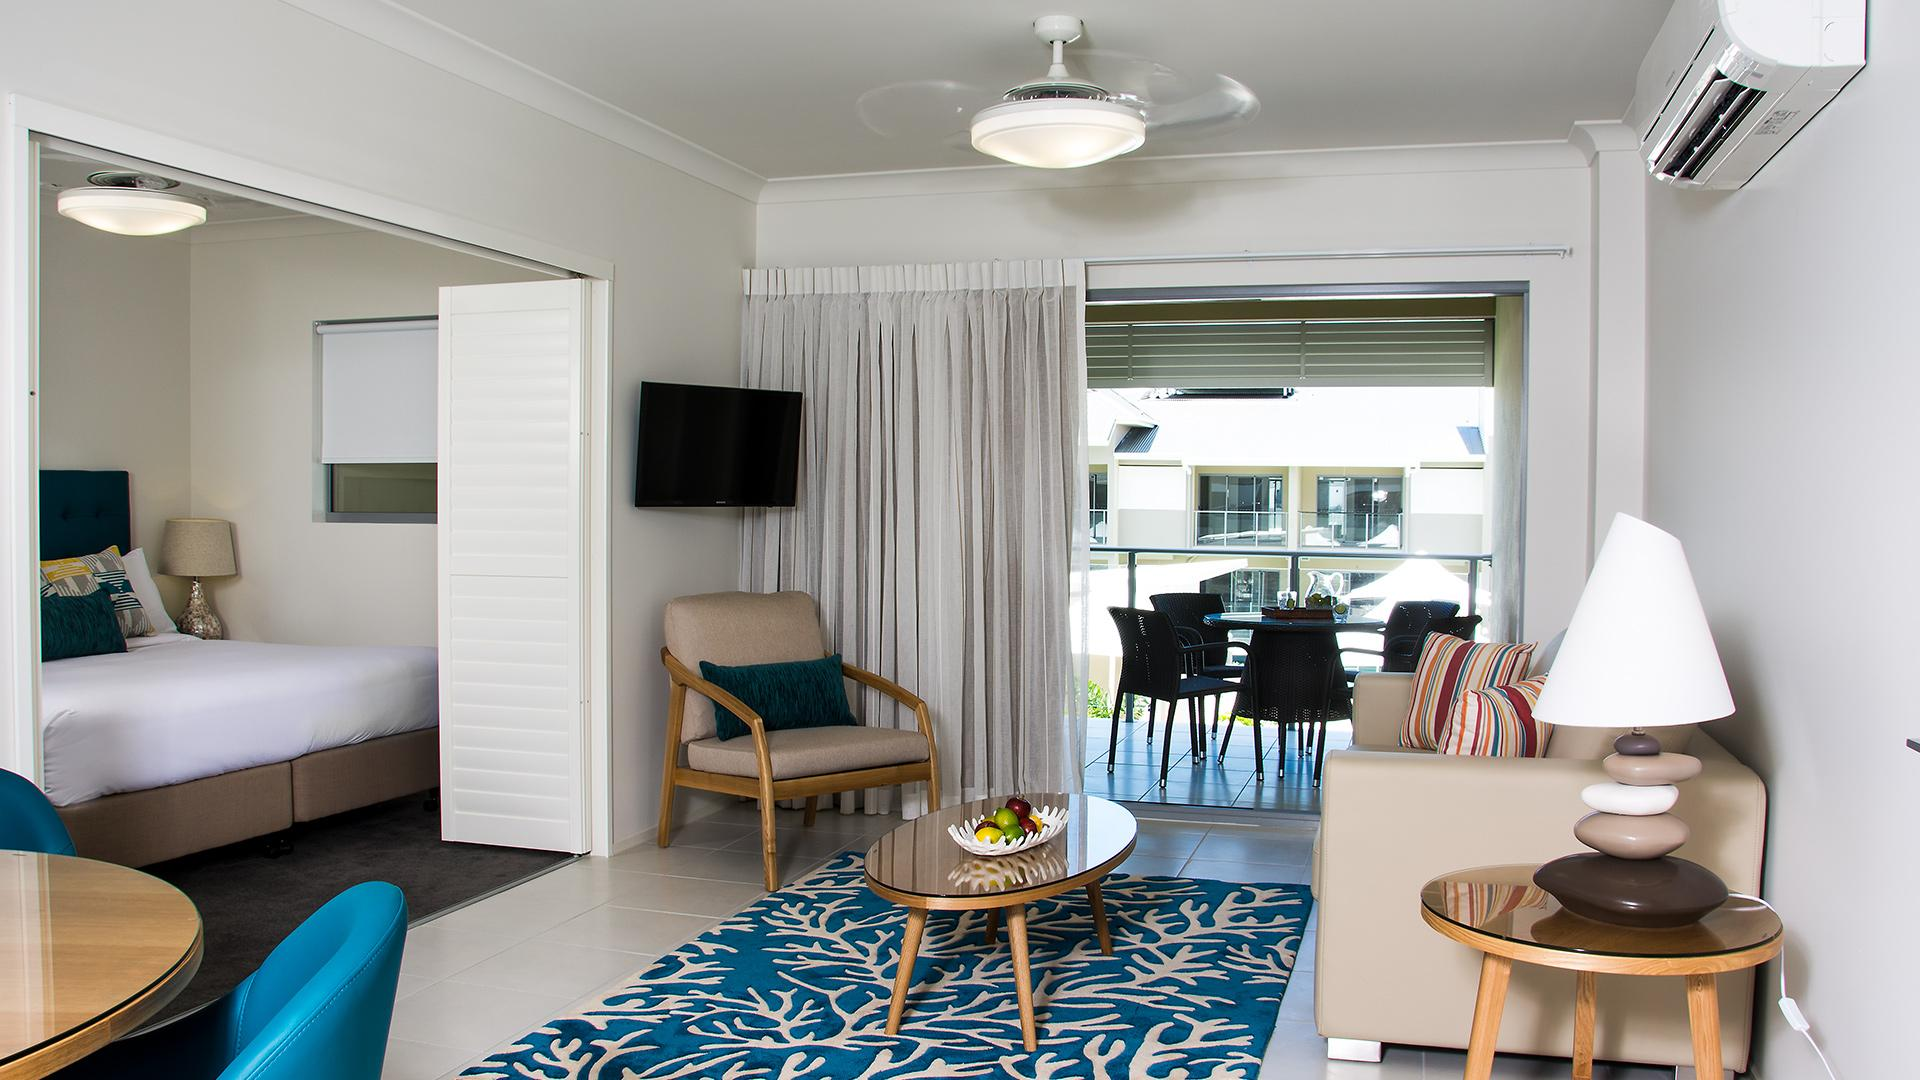 One-Bedroom Apartment — Pool View image 1 at 1770 Lagoons Central Apartment Resort by Gladstone Regional, Queensland, Australia